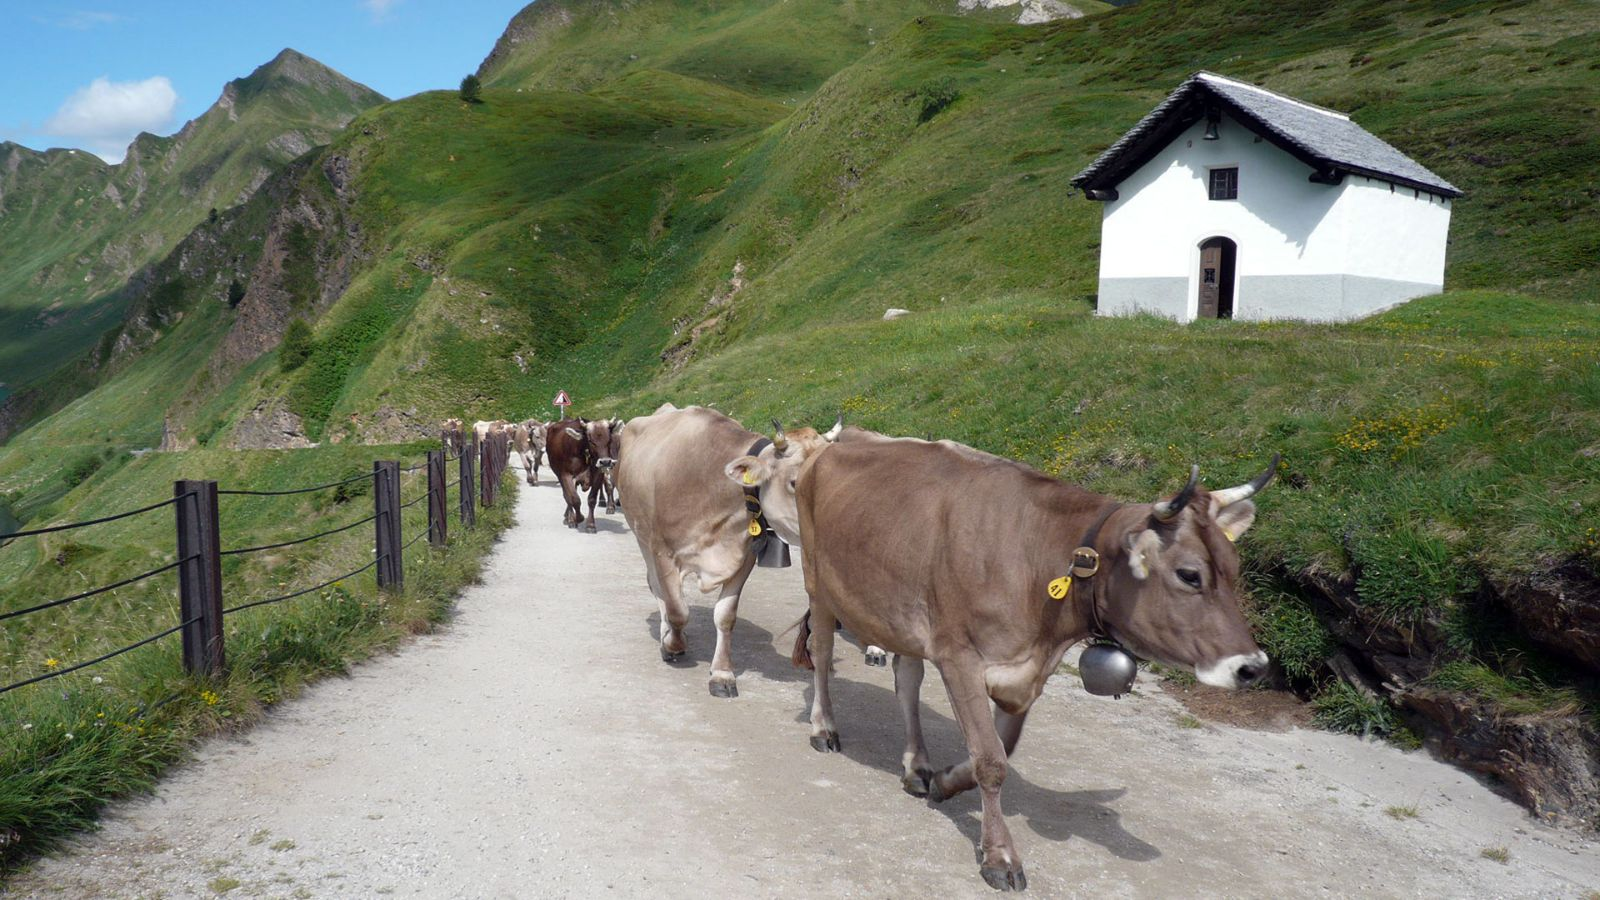 Cows on the way to the alp, lake Ritom